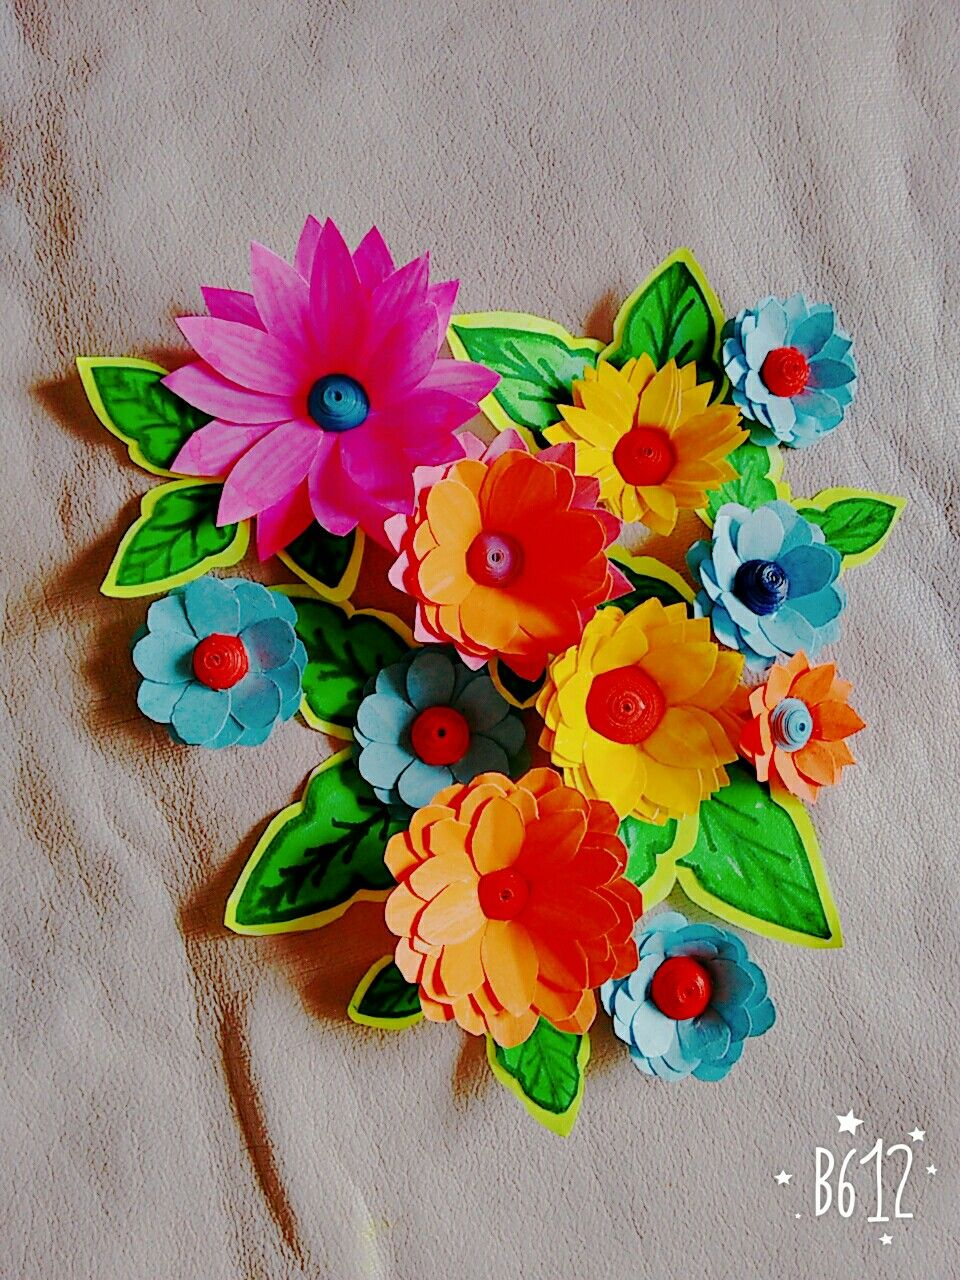 Pin By Pallavi Deb On Paper Flowers Pinterest Flowers